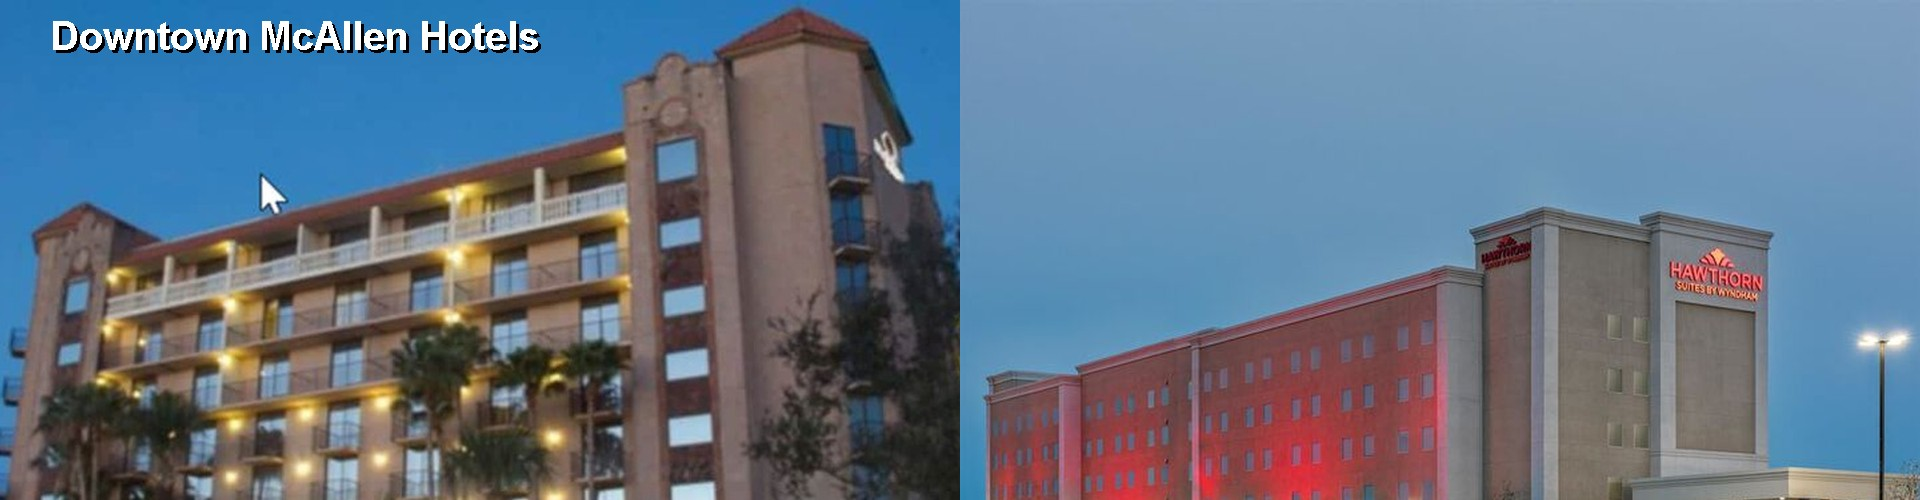 5 Best Hotels near Downtown McAllen